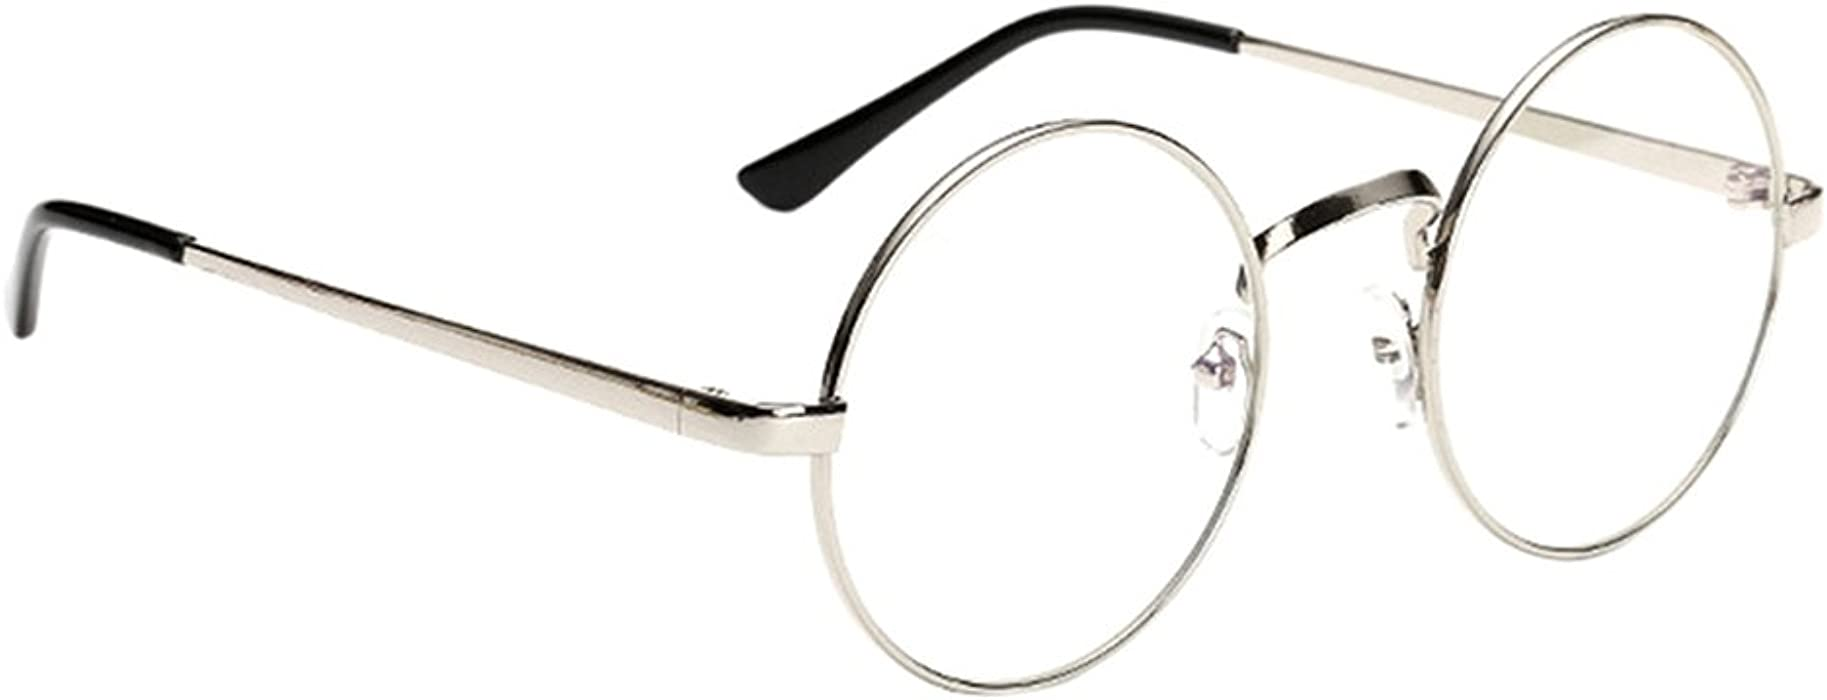 1b4680e811a1 Littlegrass Round Circle Frame Vintage Large Clear Lens Glasses Metal Brown  Black Silver Gold